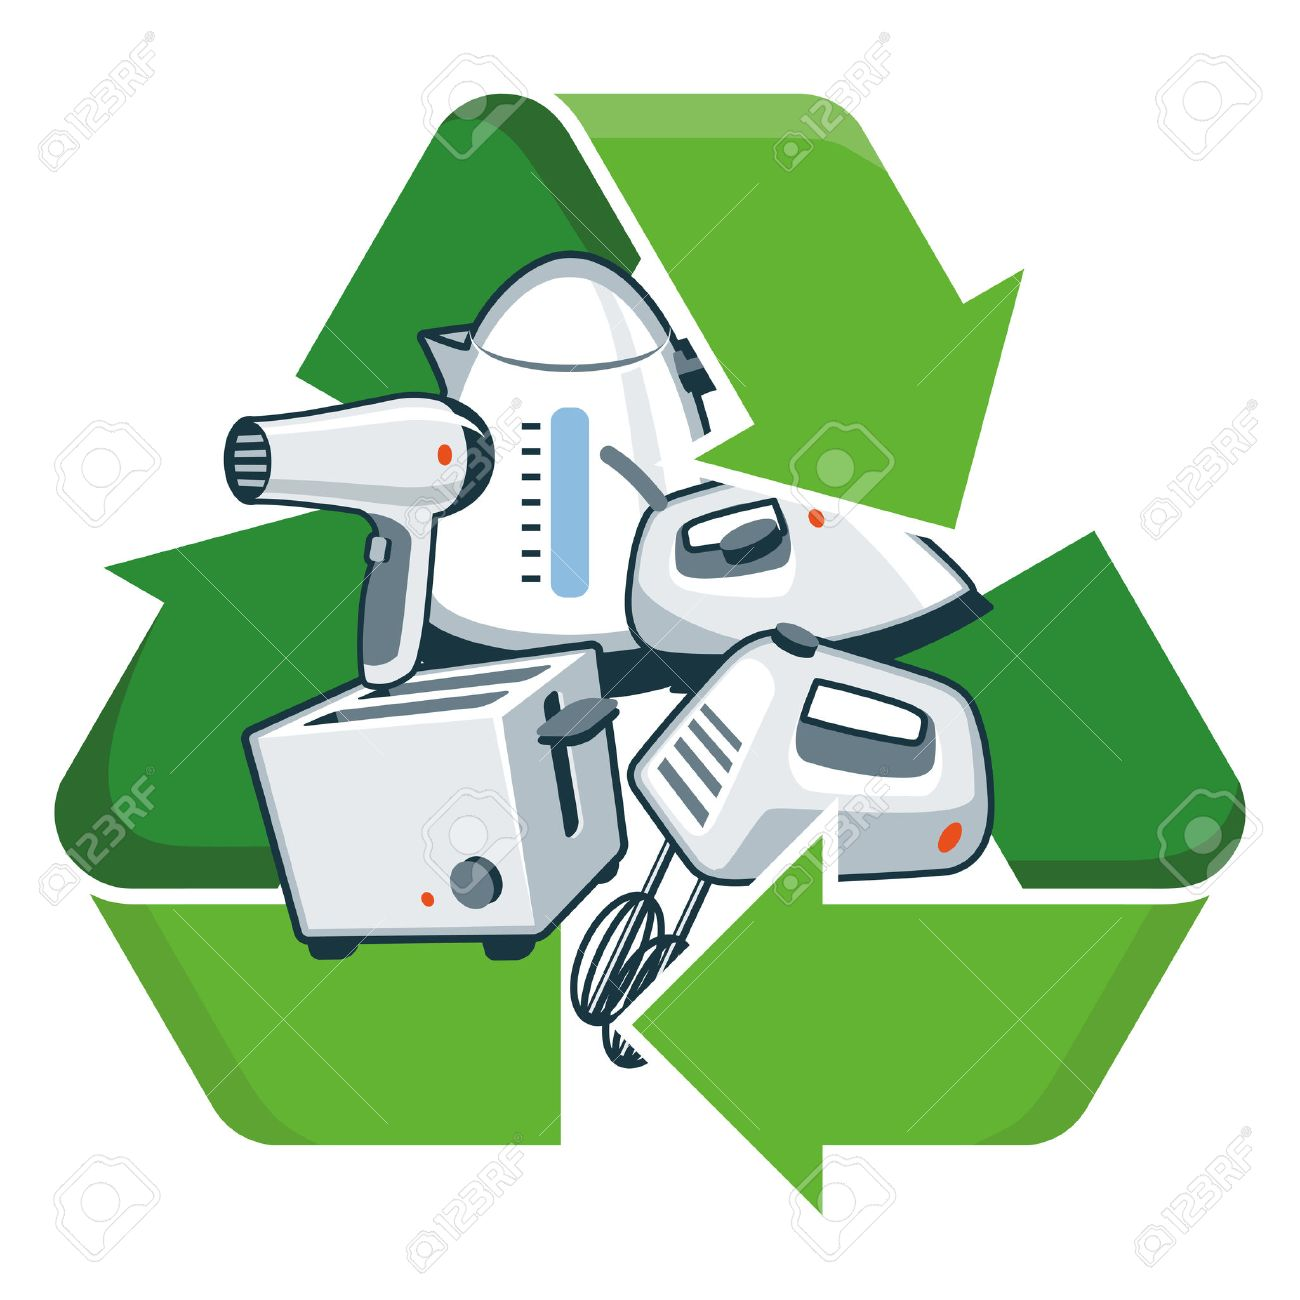 http://previews.123rf.com/images/petovarga/petovarga1407/petovarga140700008/30561516-Small-electronic-home-appliances-with-recycling-symbol-Isolated-vector-illustration-Waste-Electrical-Stock-Vector.jpg